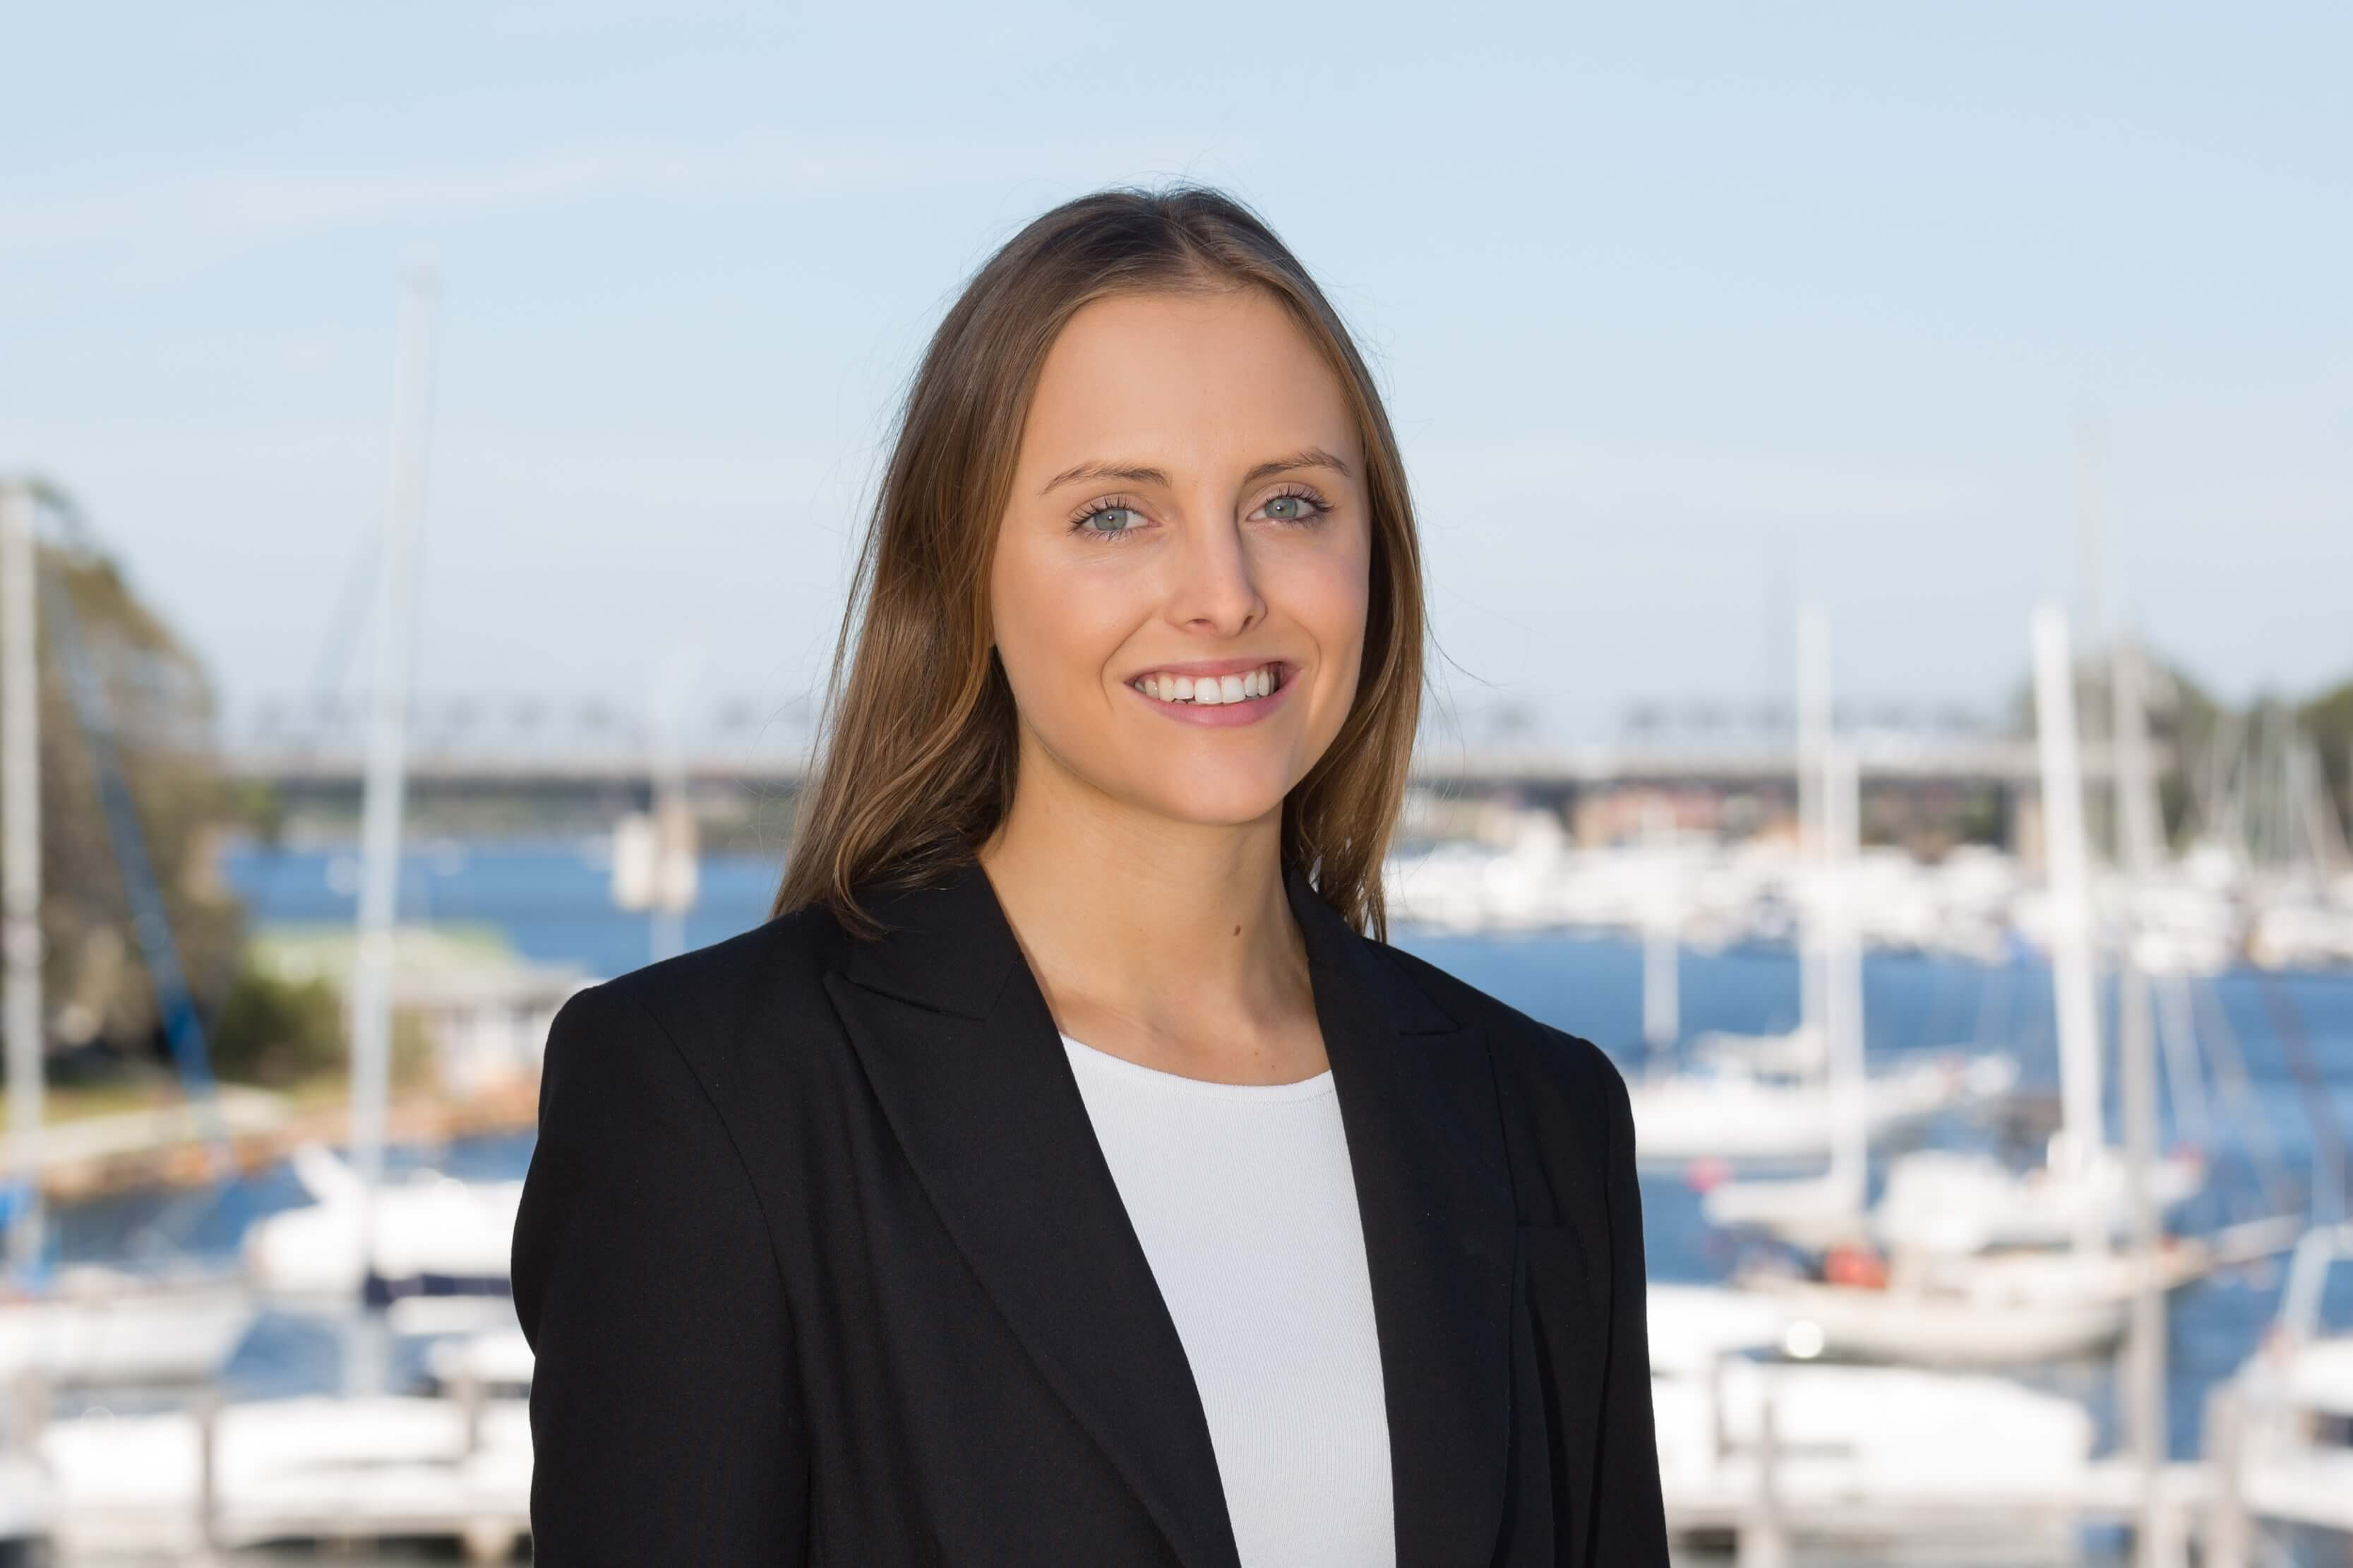 harris partners real estate, harris partners, sydney real estate, rebecca tippett, inner west agent, inner west agency, inner west real estate, inner west realty